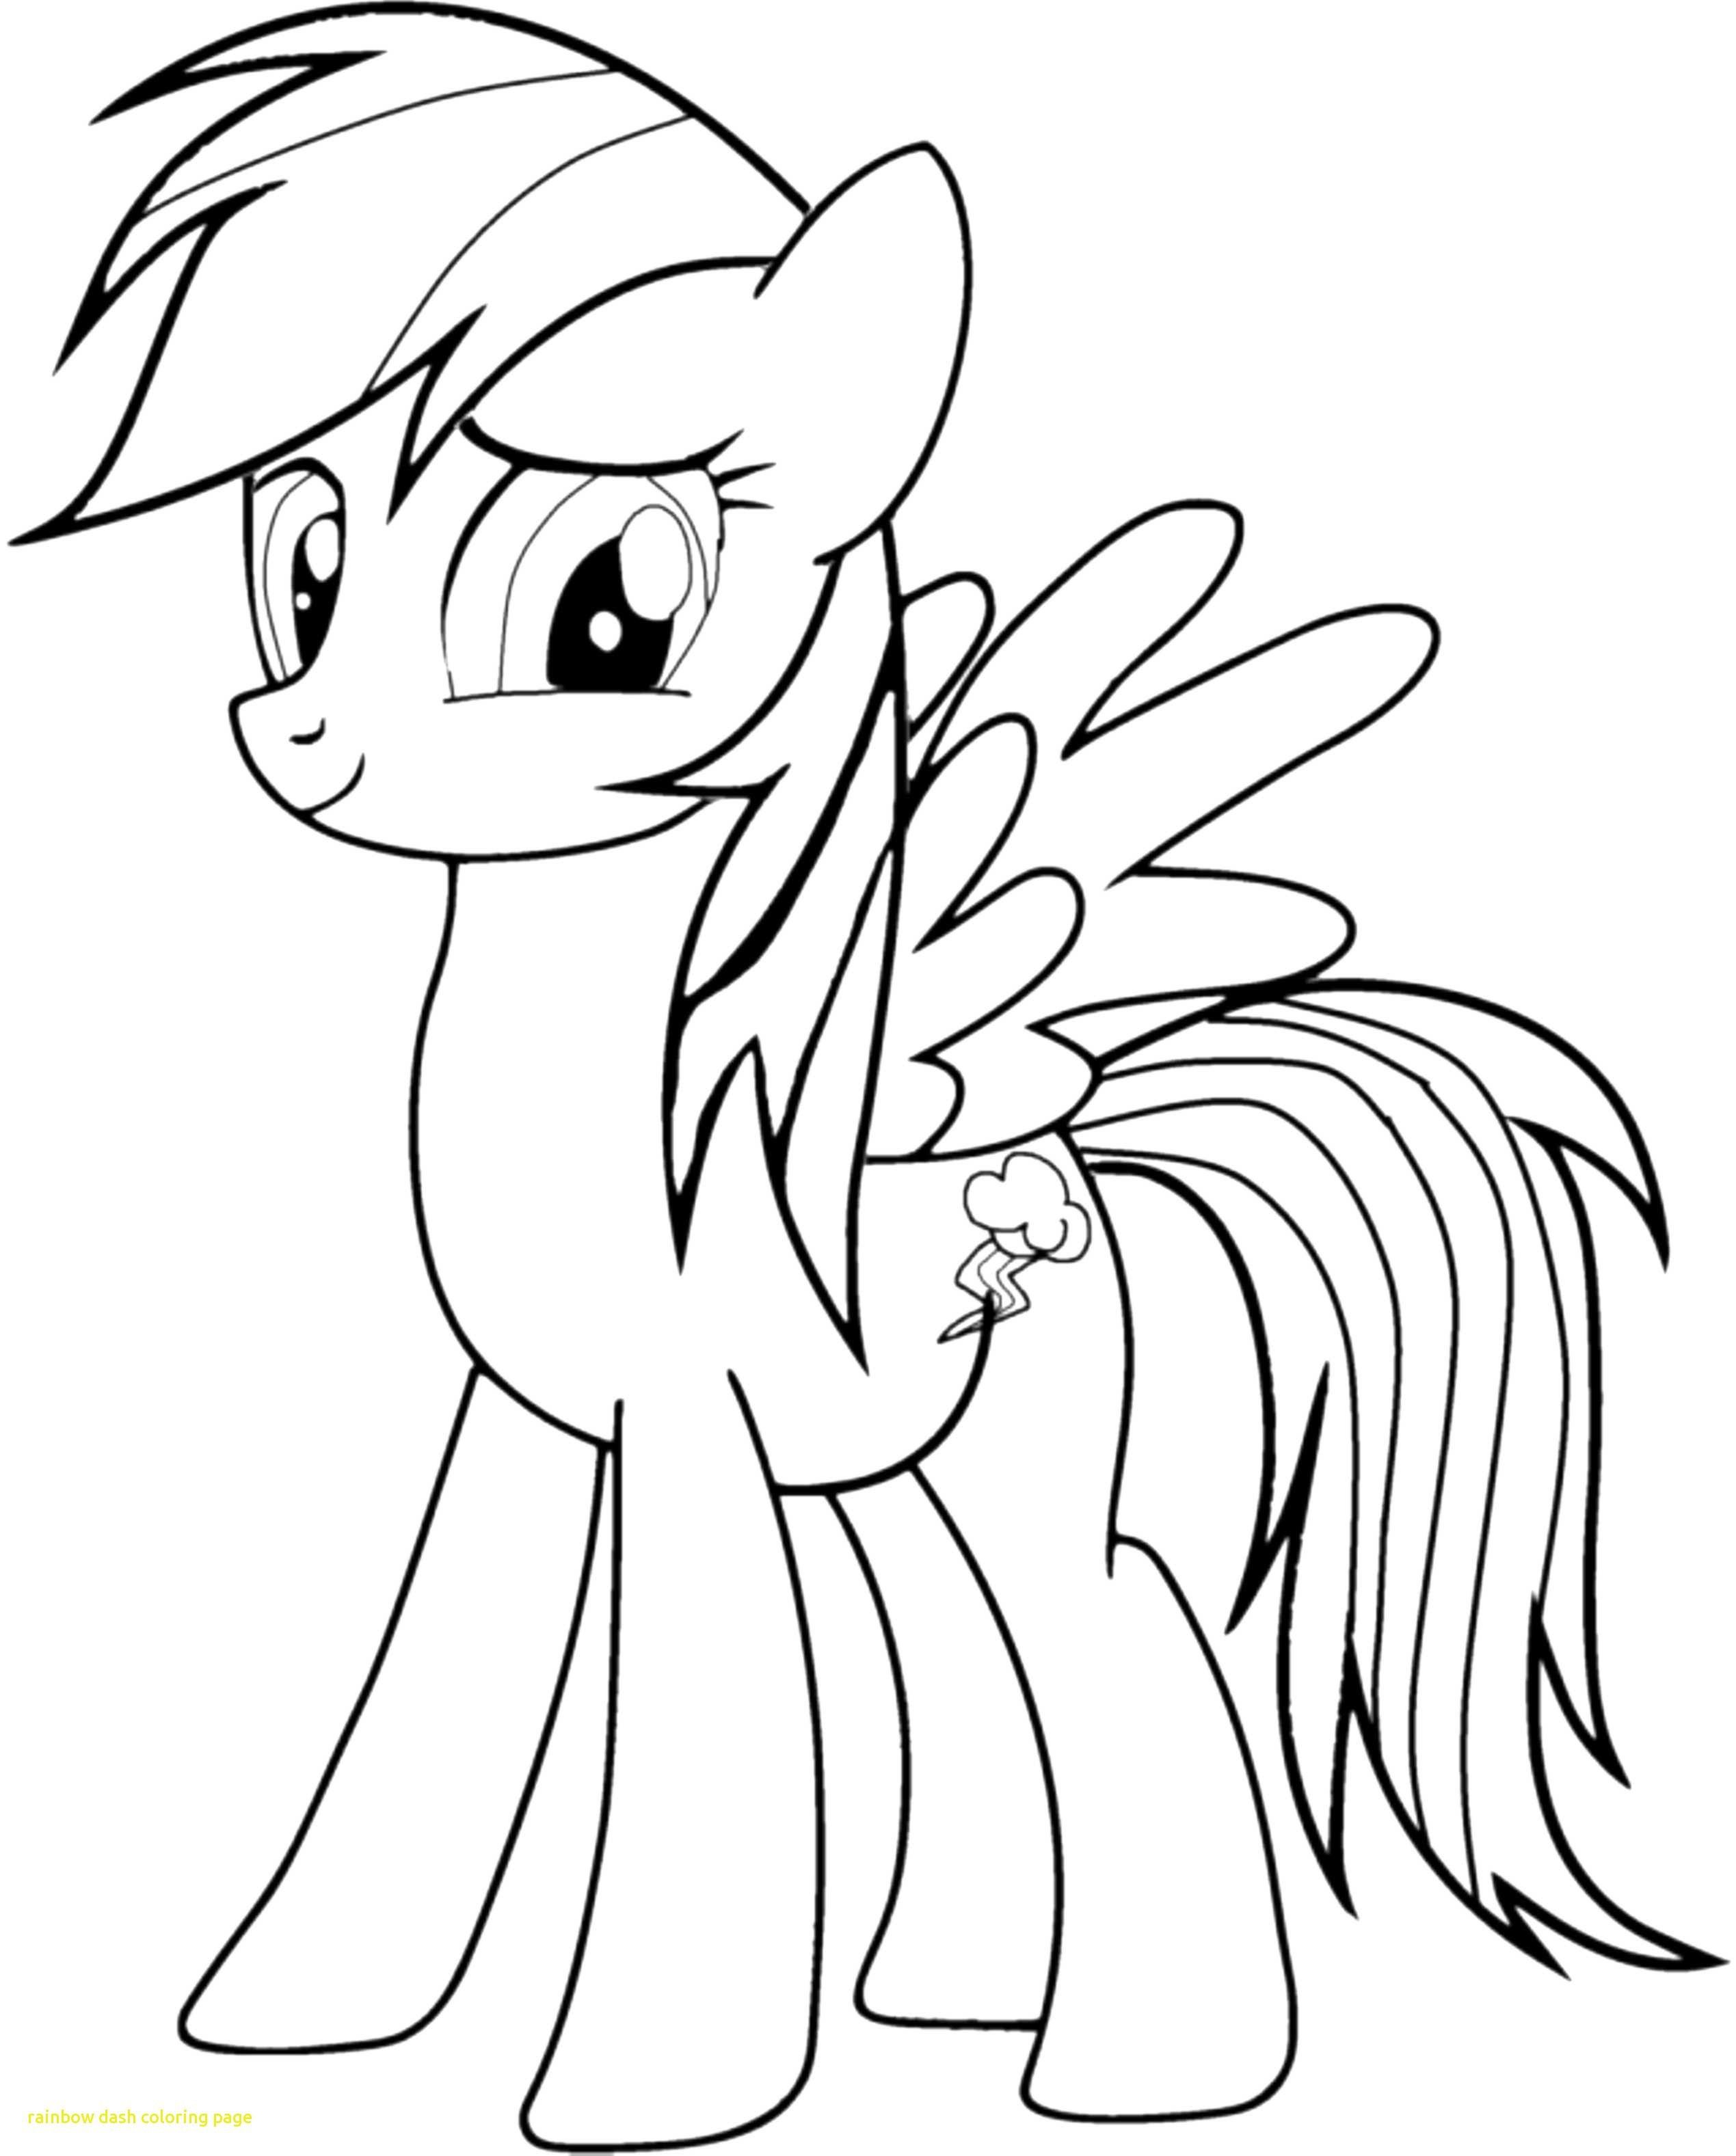 My Little Pony Coloring Pages Rainbow Dash Through The Thousands Of Pictures On The Inter My Little Pony Coloring Horse Coloring Pages Cartoon Coloring Pages